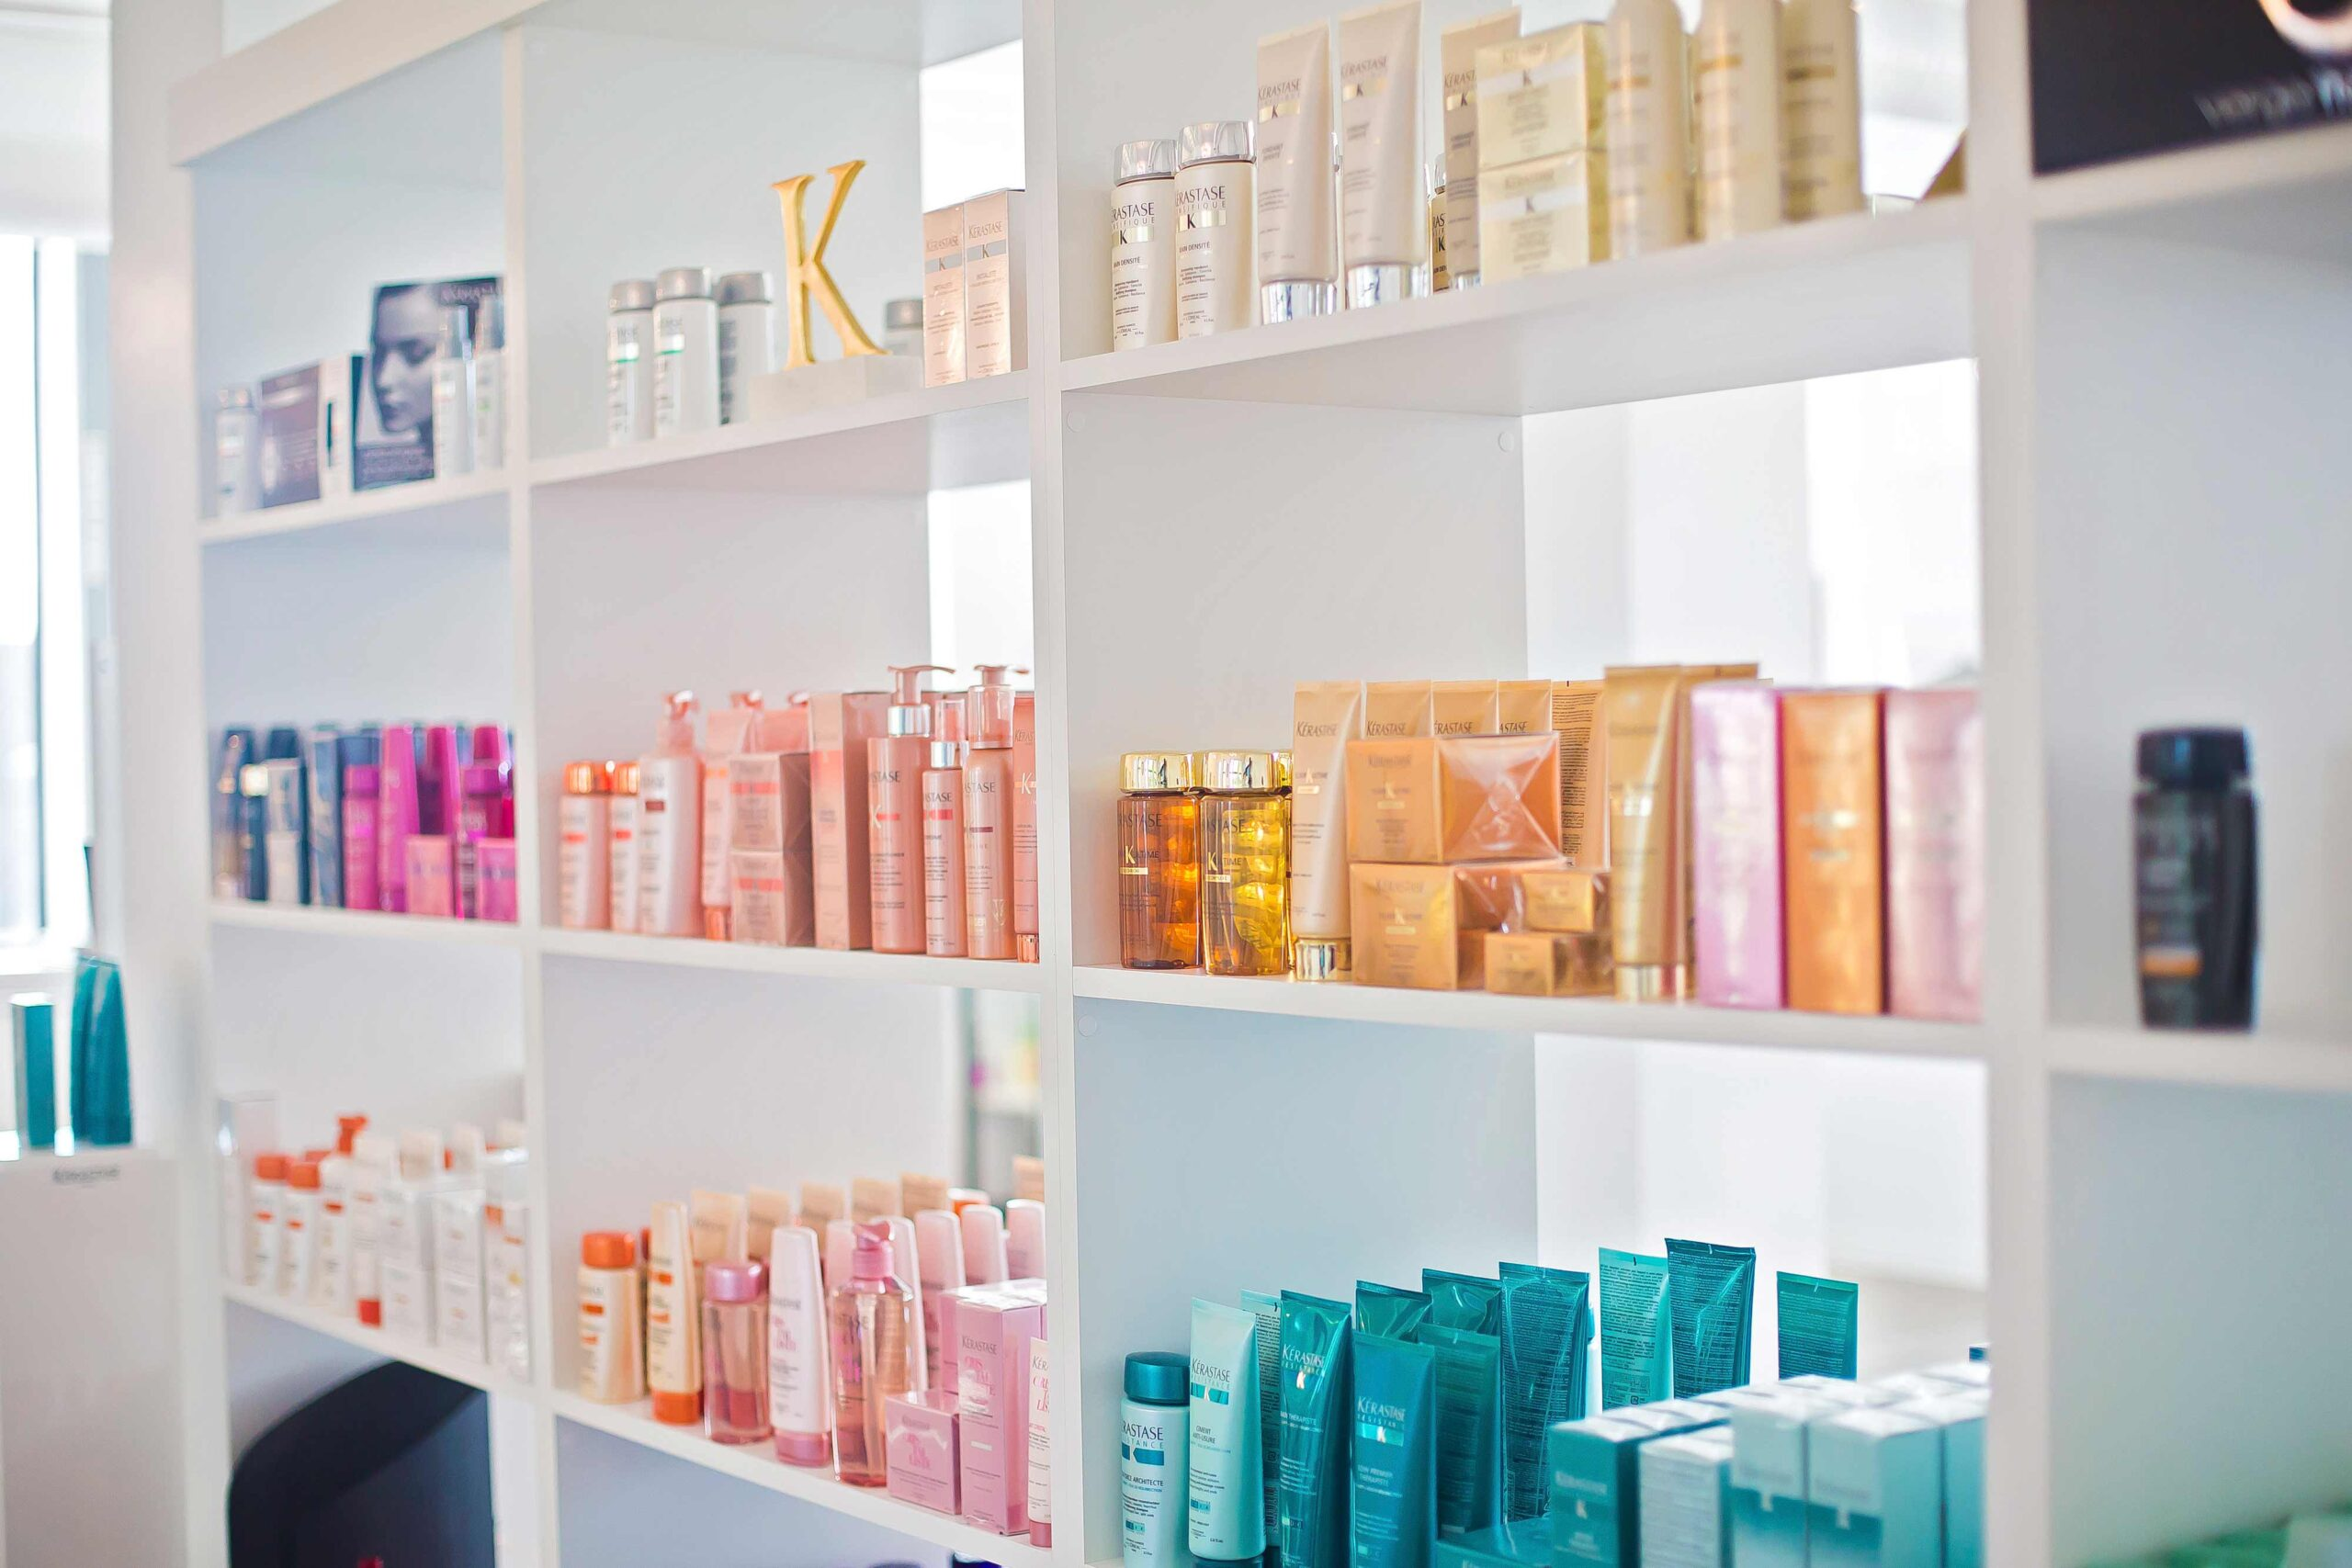 Our full collection of Keratase products